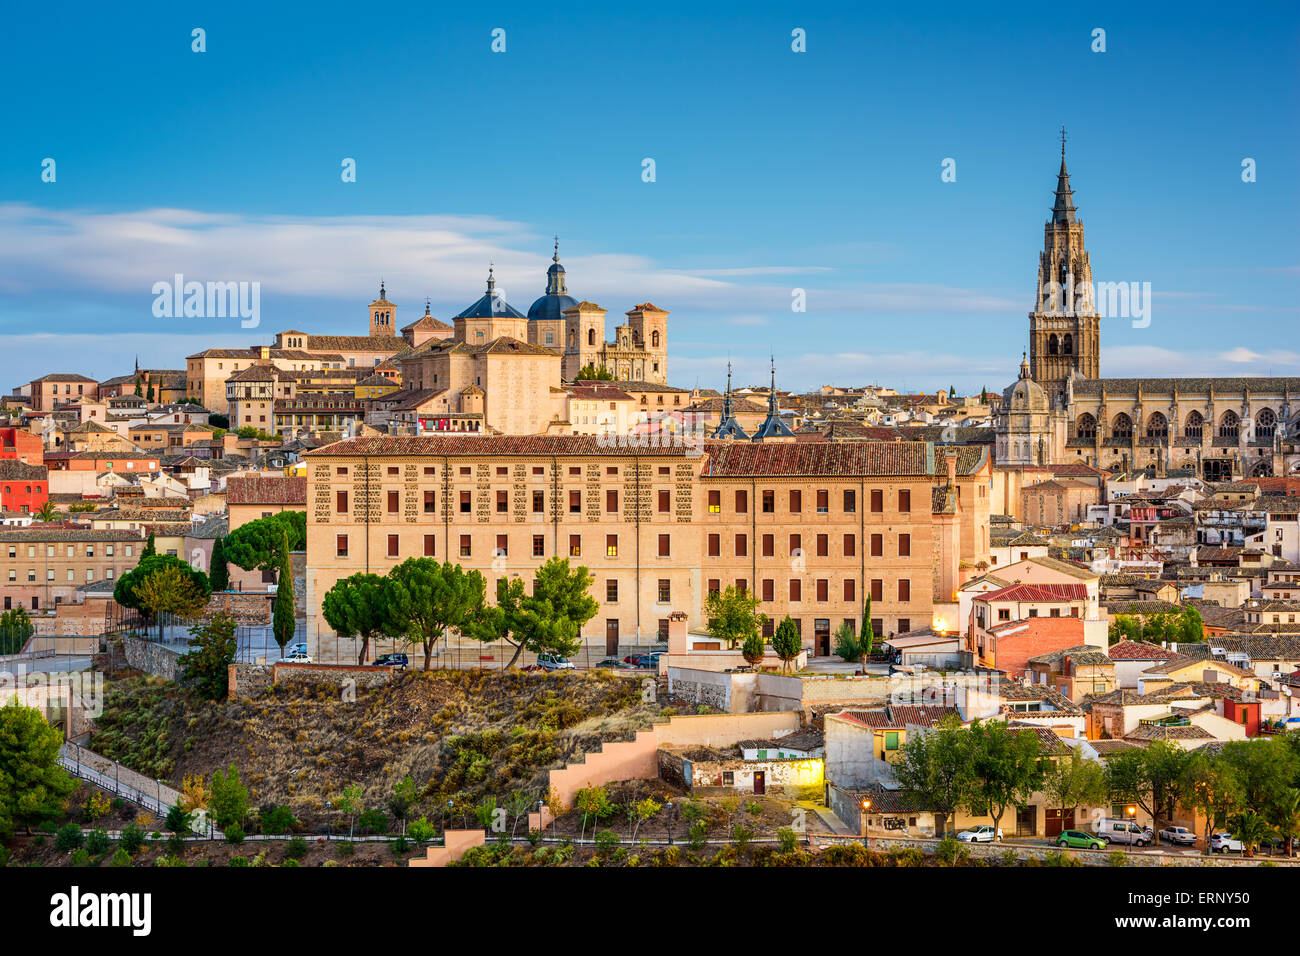 Toledo, Spain town city view at the cathedral. - Stock Image